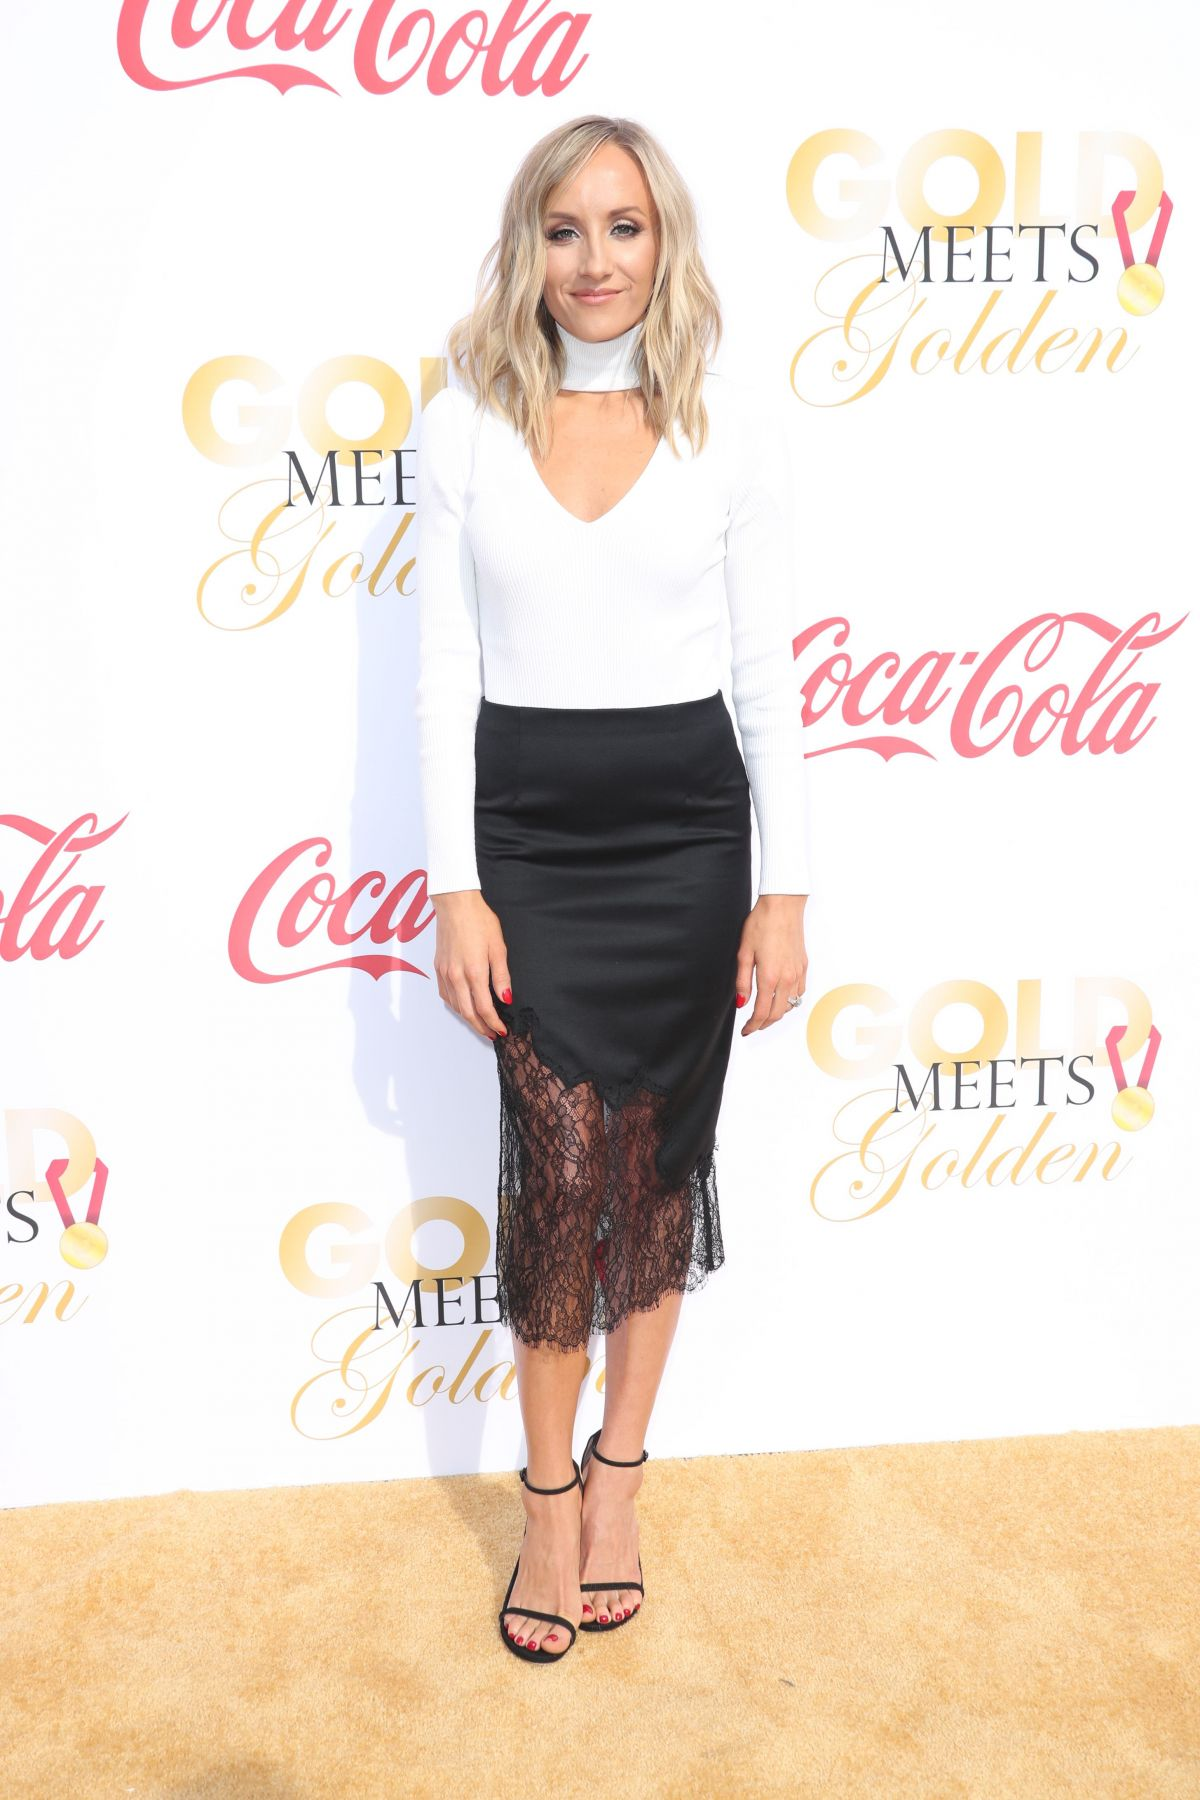 nastia liukin at 5th annual gold meets golden in los